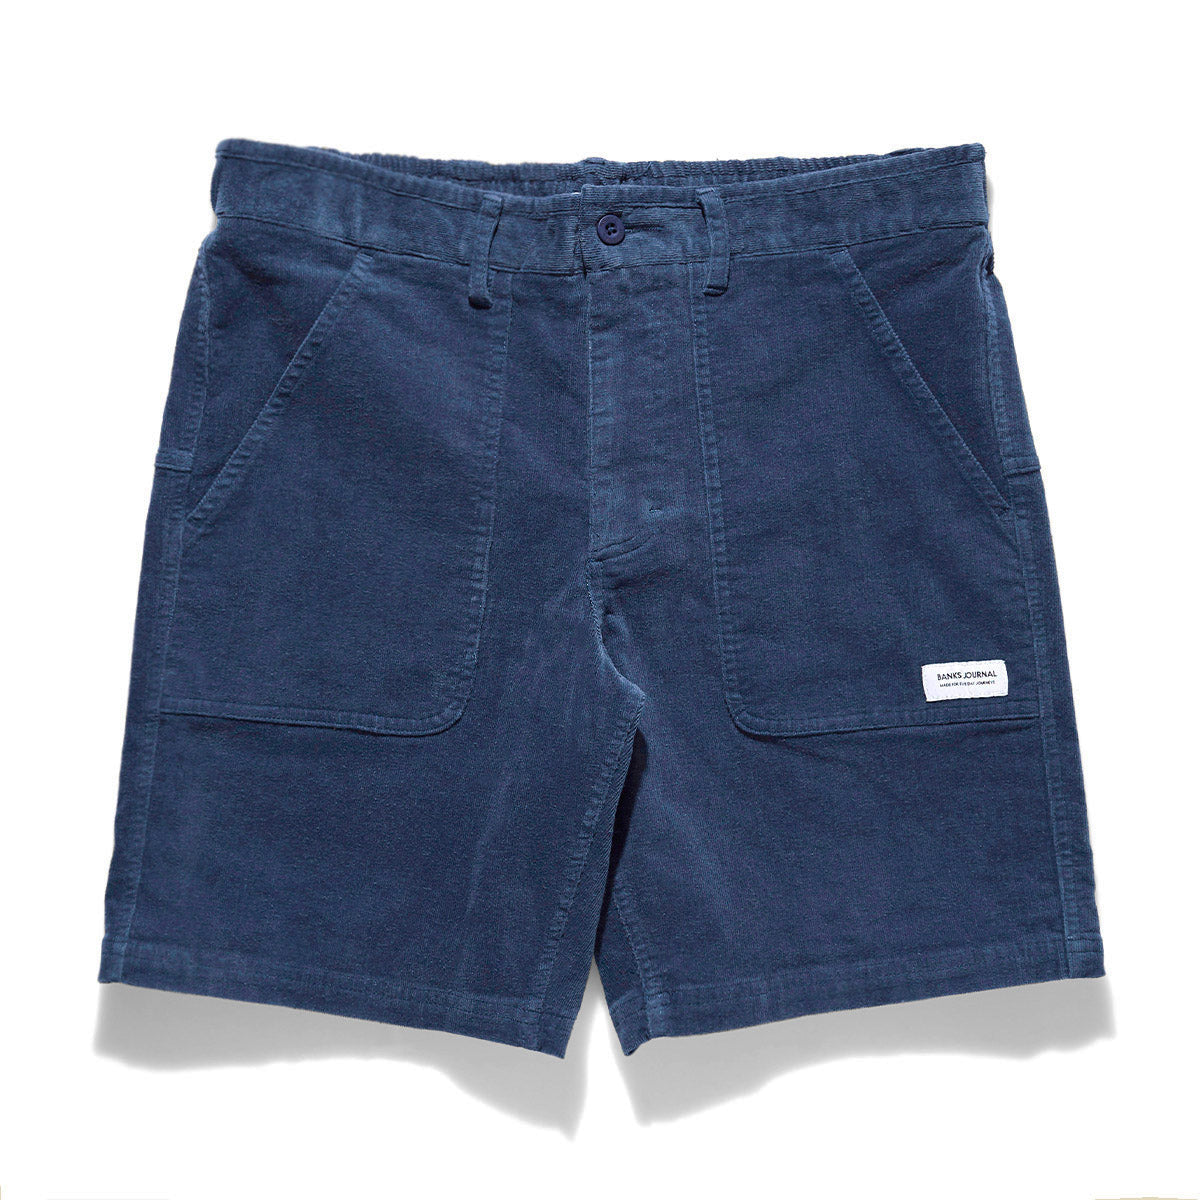 Big Bear Walkshort - Insignia Blue